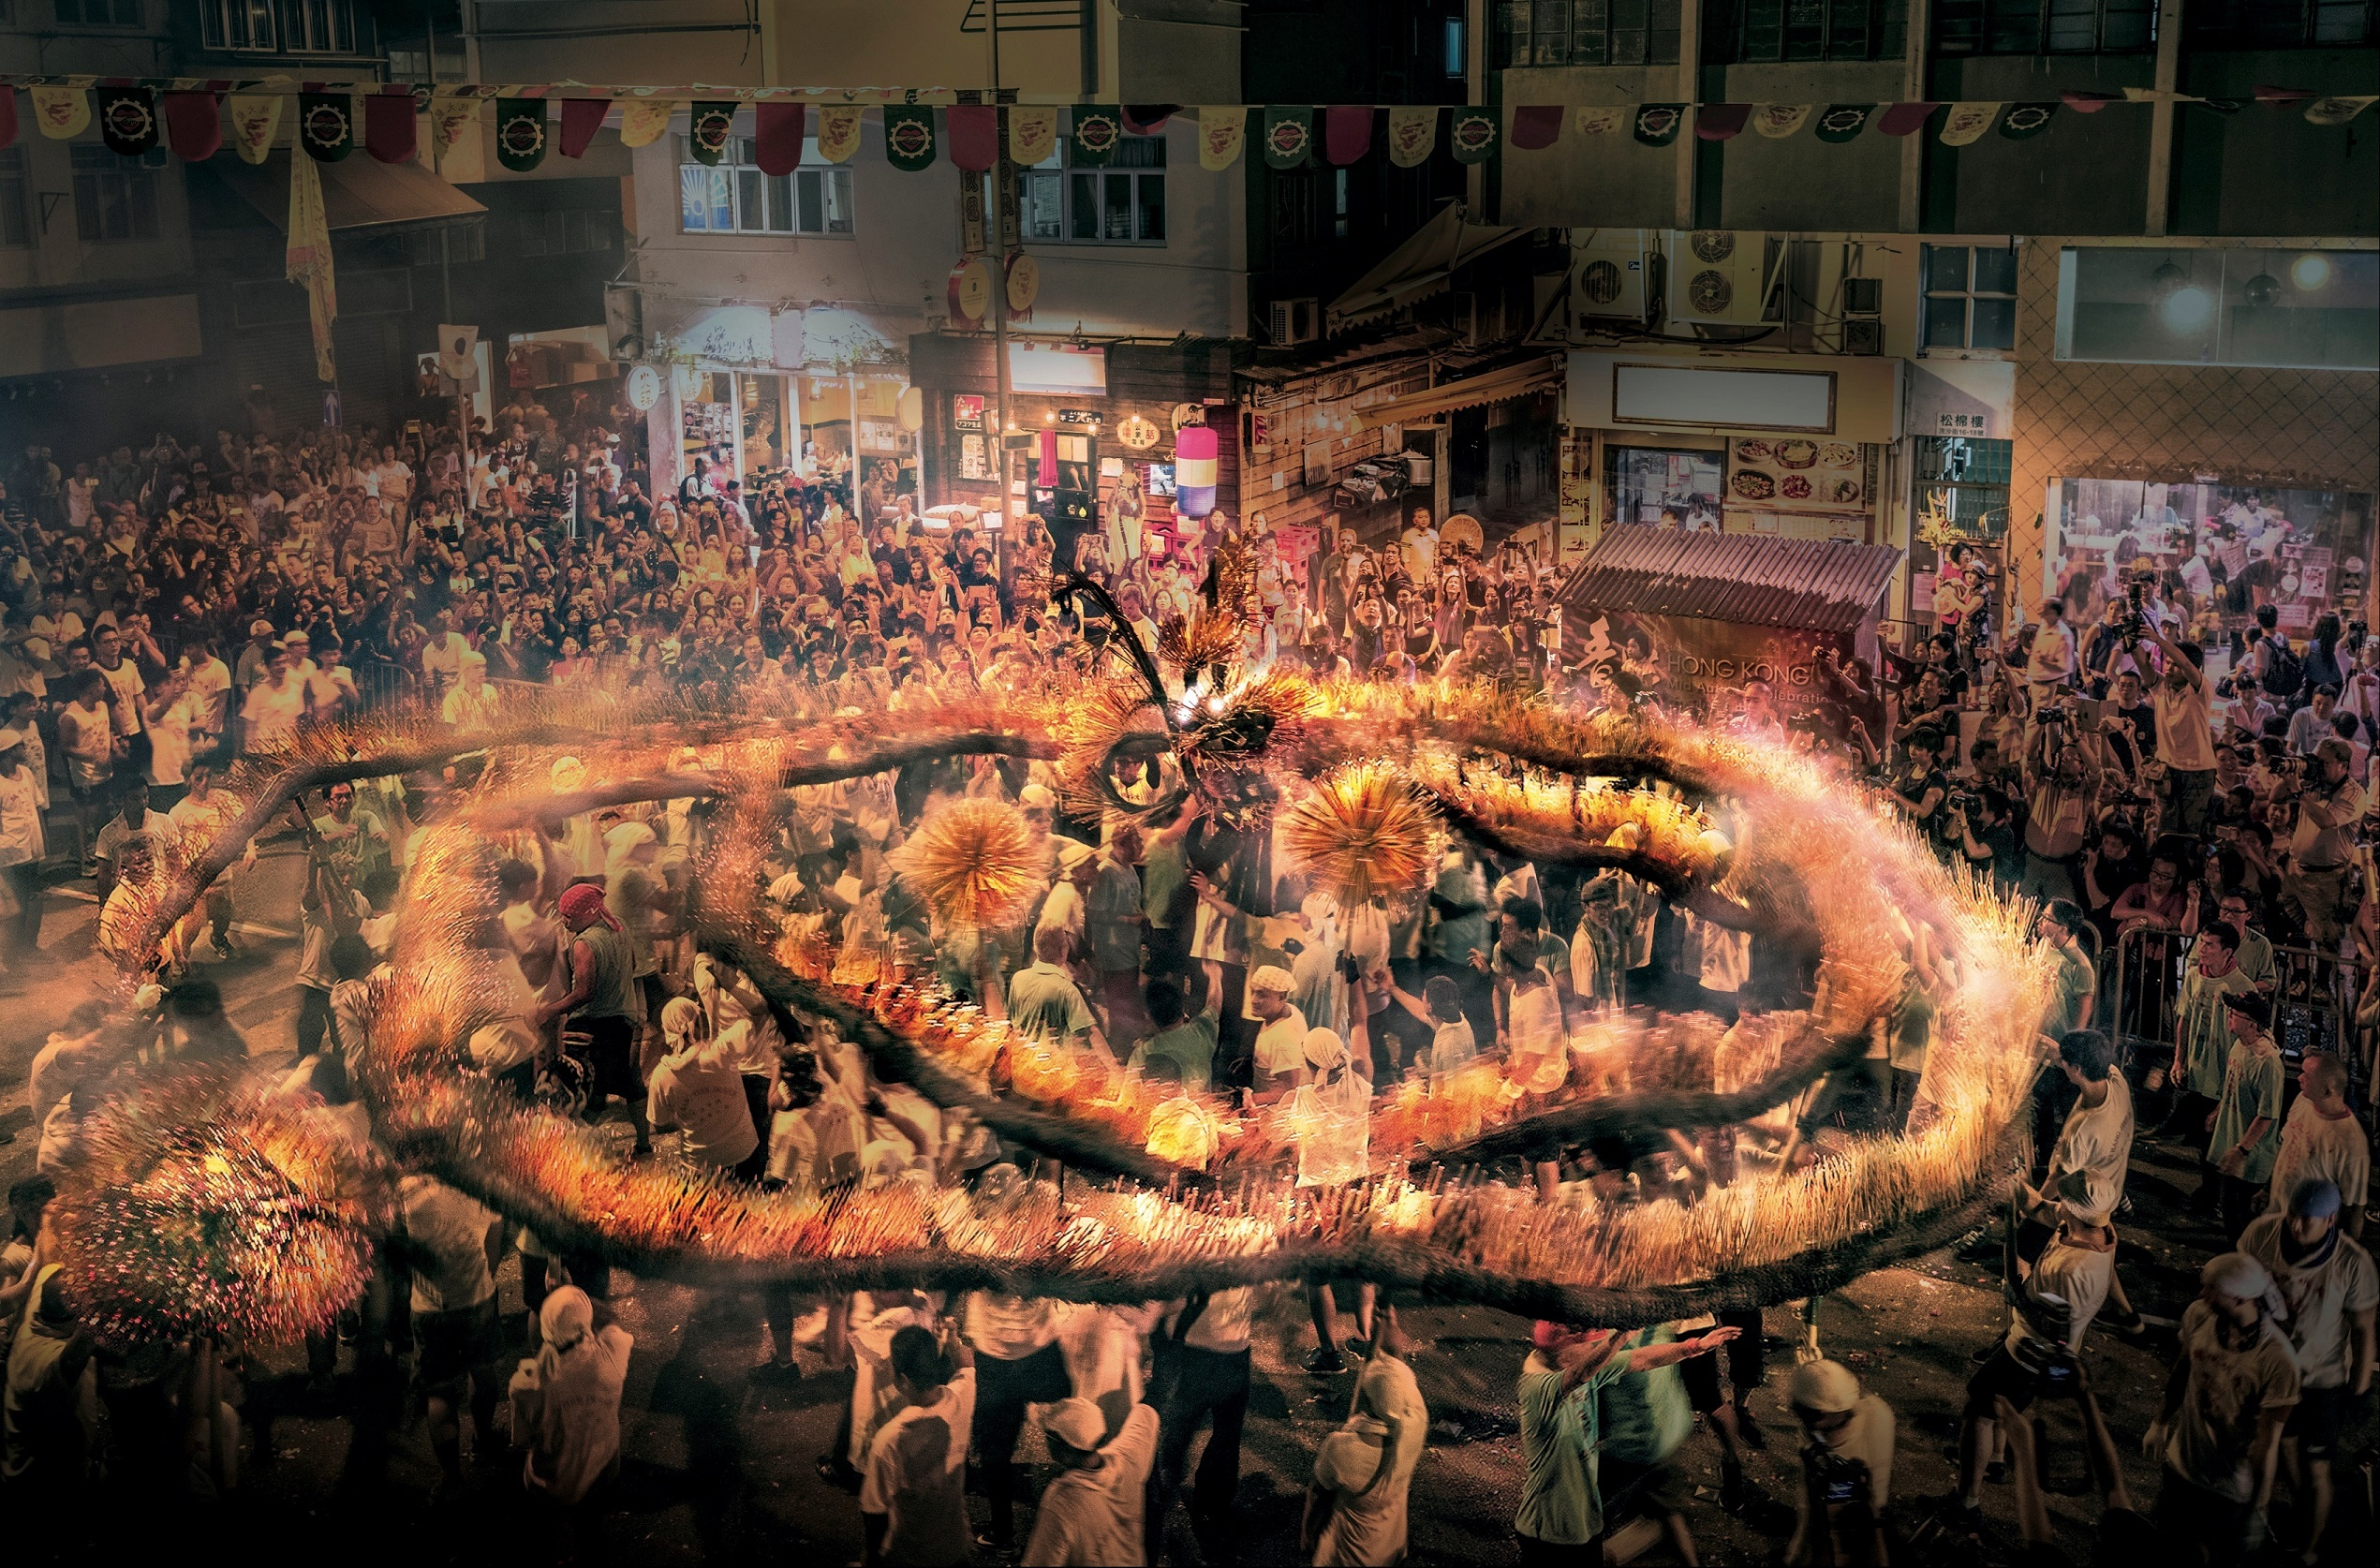 Hong Kong Celebrates the Mid-Autumn Festival with the